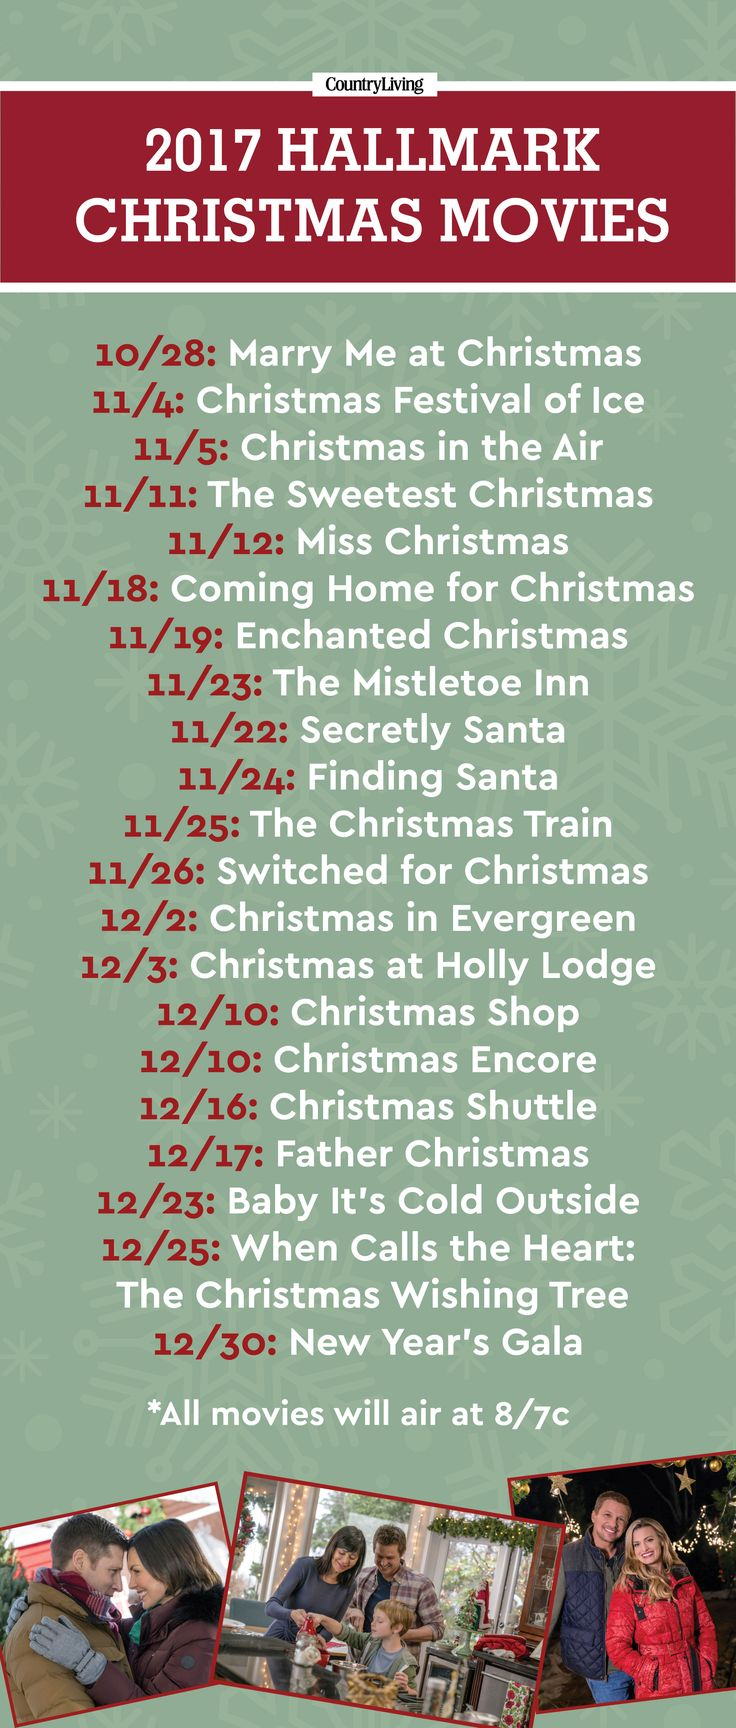 Hallmark will premiere 21 holiday films this year starring Candace Cameron Bure, Kimberly Williams-Paisley, Lacey Chabert, and more familiar favorites. Get your DVR ready now—the Christmas fun starts October 24!